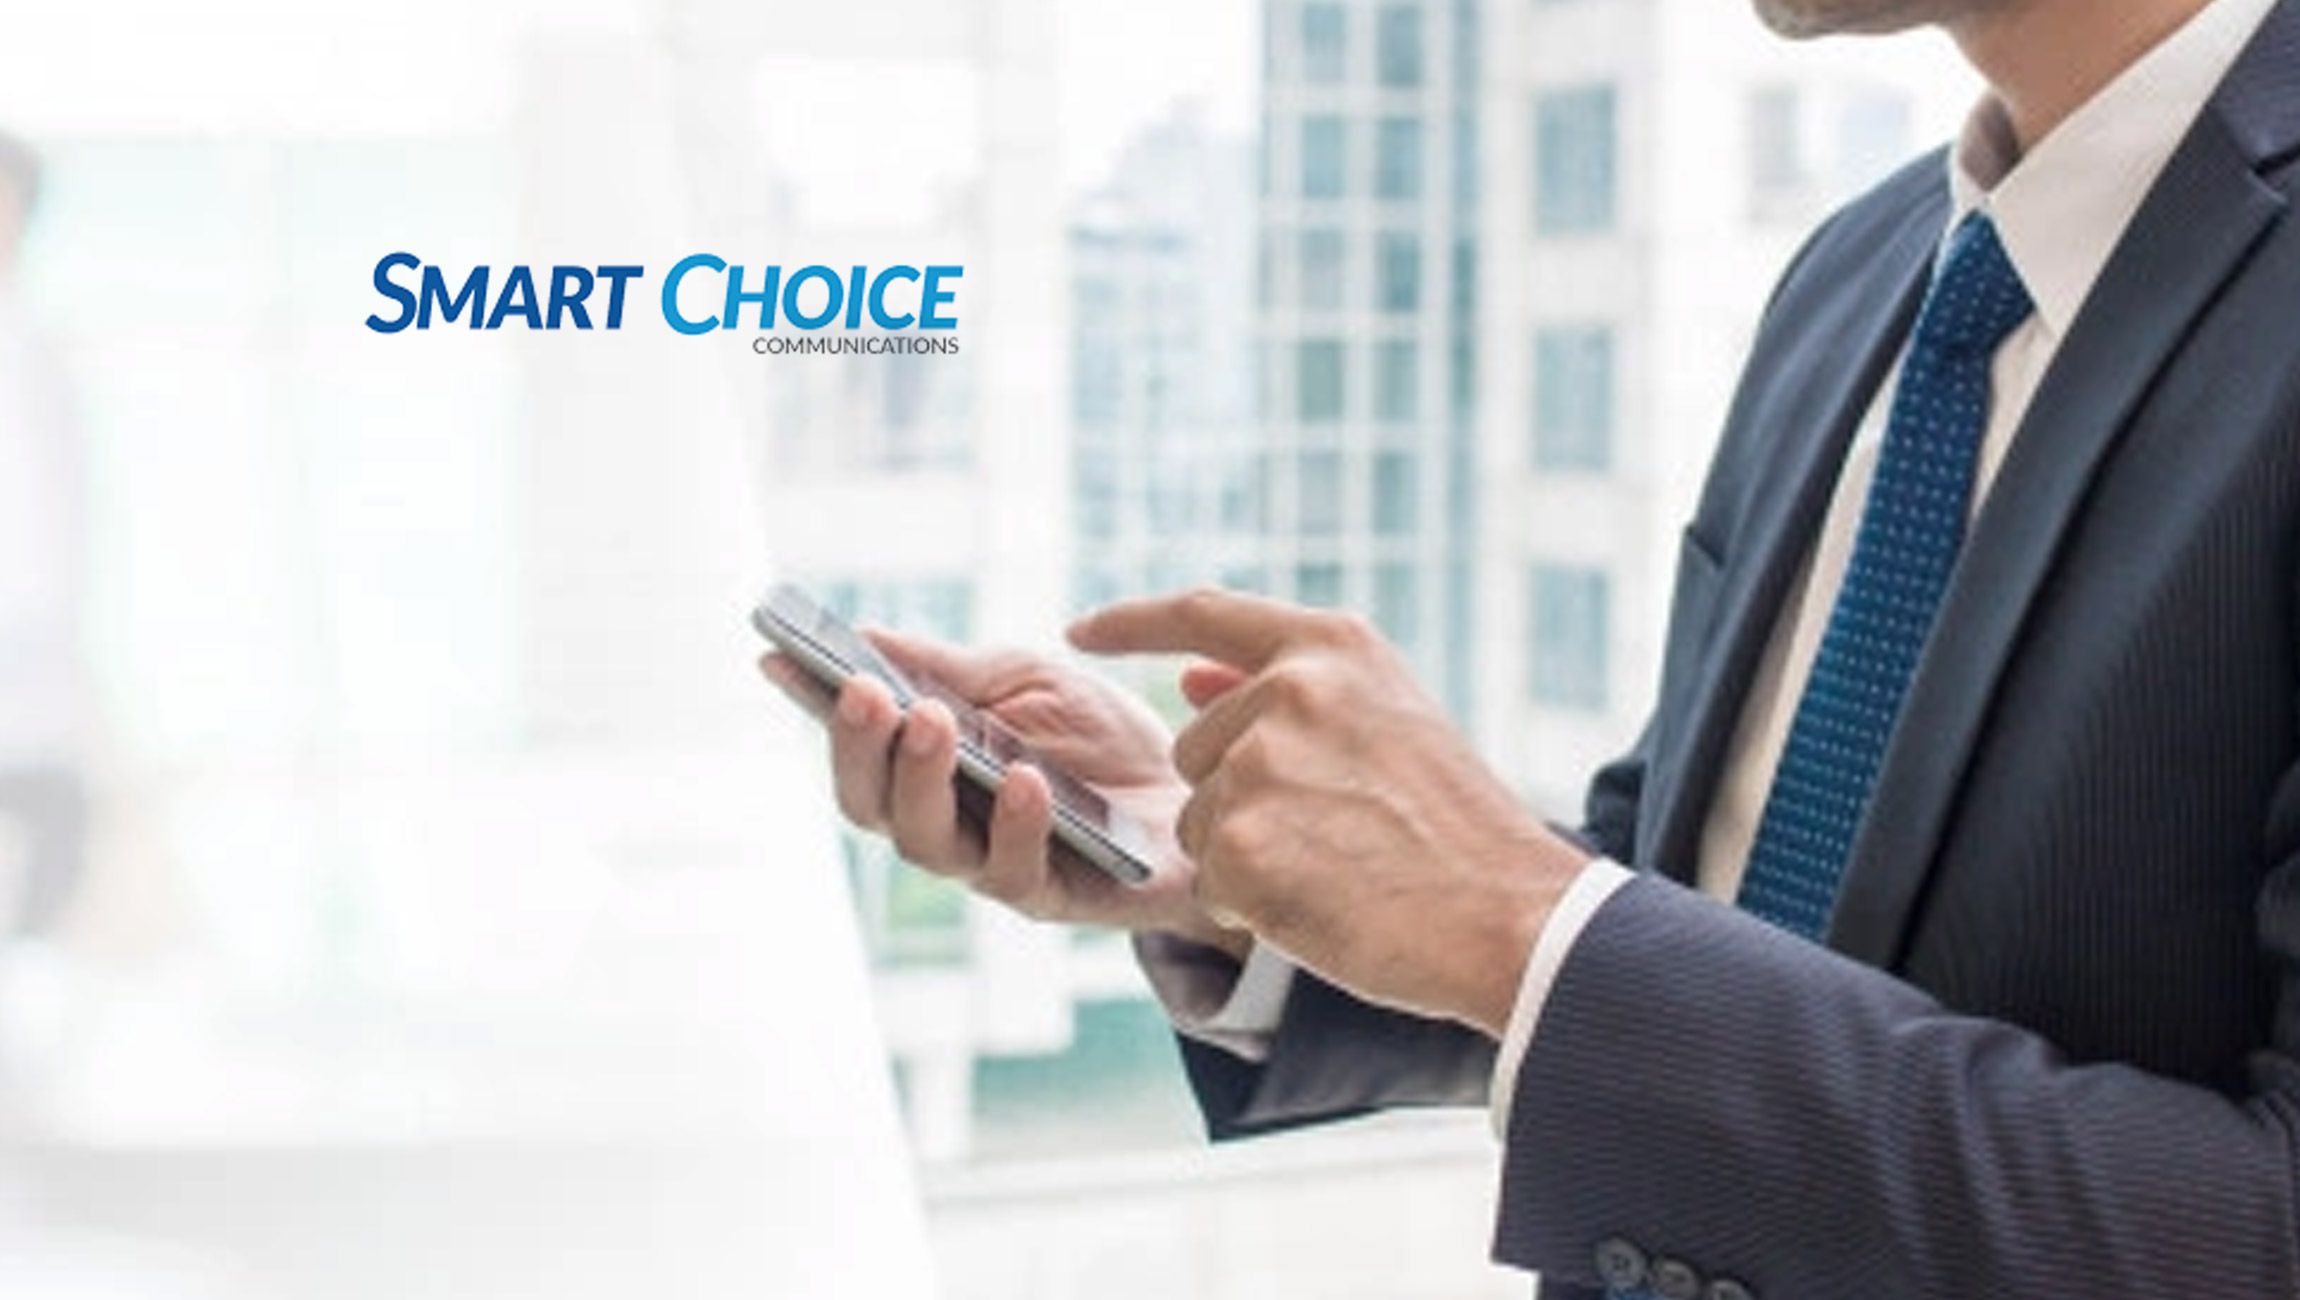 Smart-Choice-Communications-Develops-Fully-Customizable-Contact-Center-and-Changes-the-CCaaS-Landscape